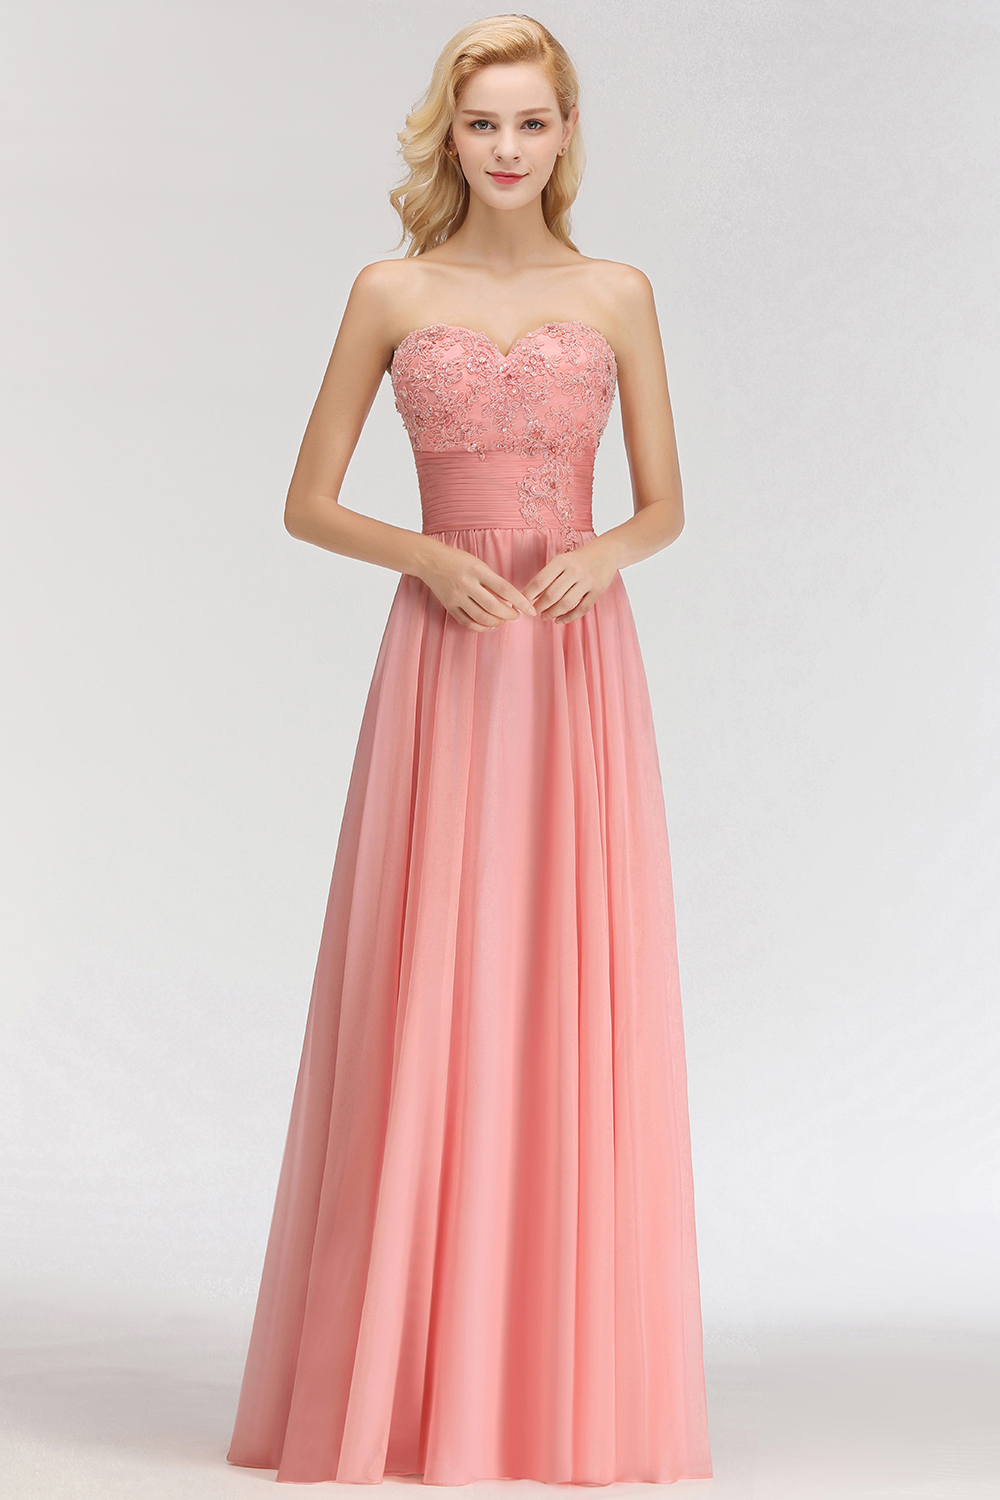 BMbridal Elegant Sweetheart Ruffle Pink Bridesmaid Dresses with Appliques